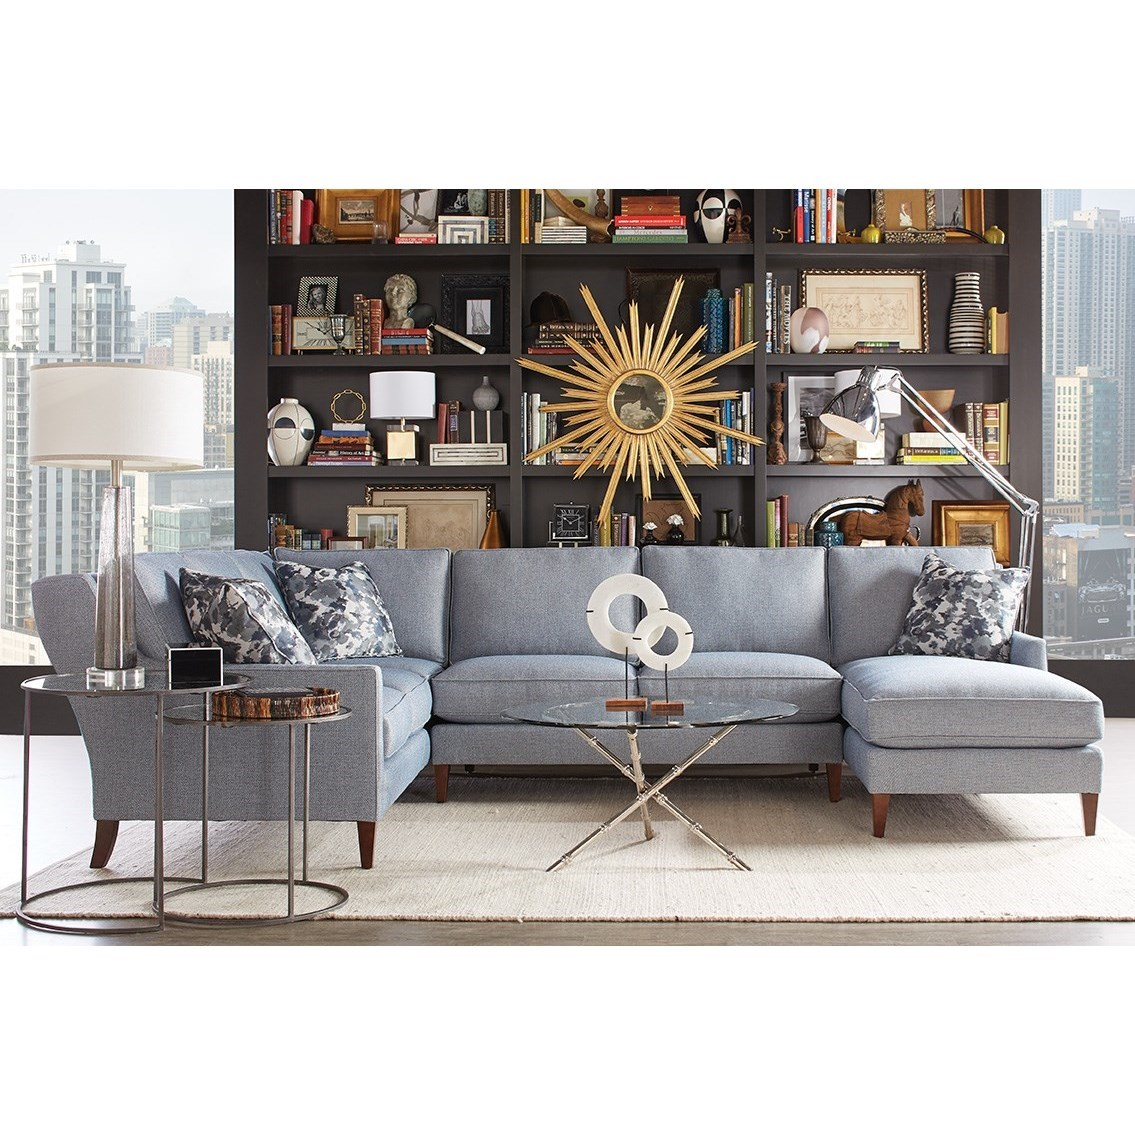 5 Seat Sectional